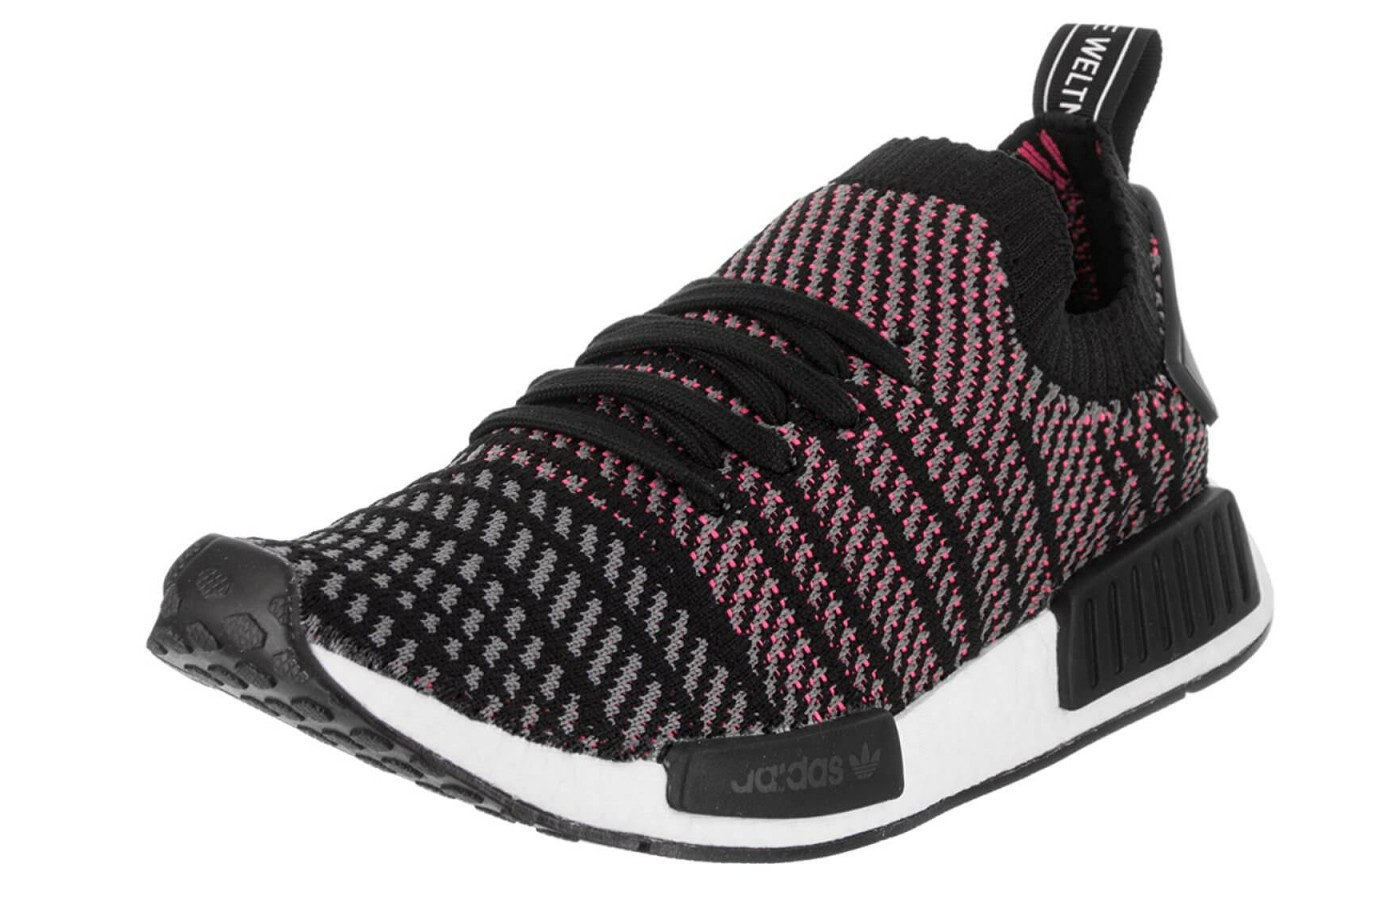 free shipping dda74 98a21 The Adidas NMD R1 Stlt Primeknit features a Primeknit upper ...